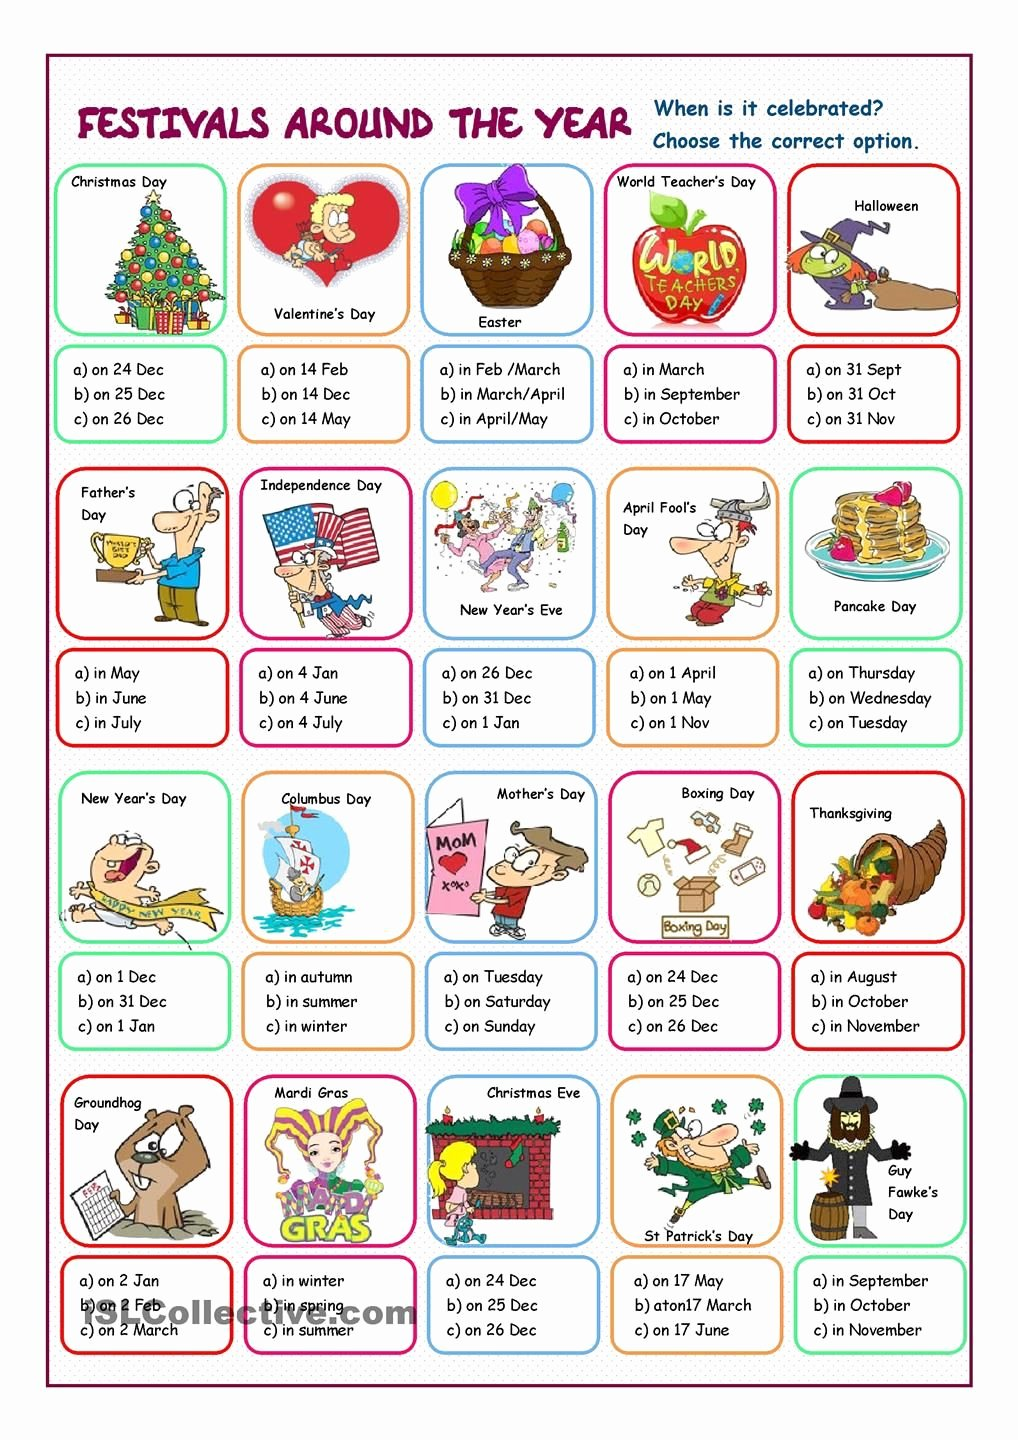 Festival Worksheets for Preschoolers Best Of Festivals Around the Year Multiple Choice